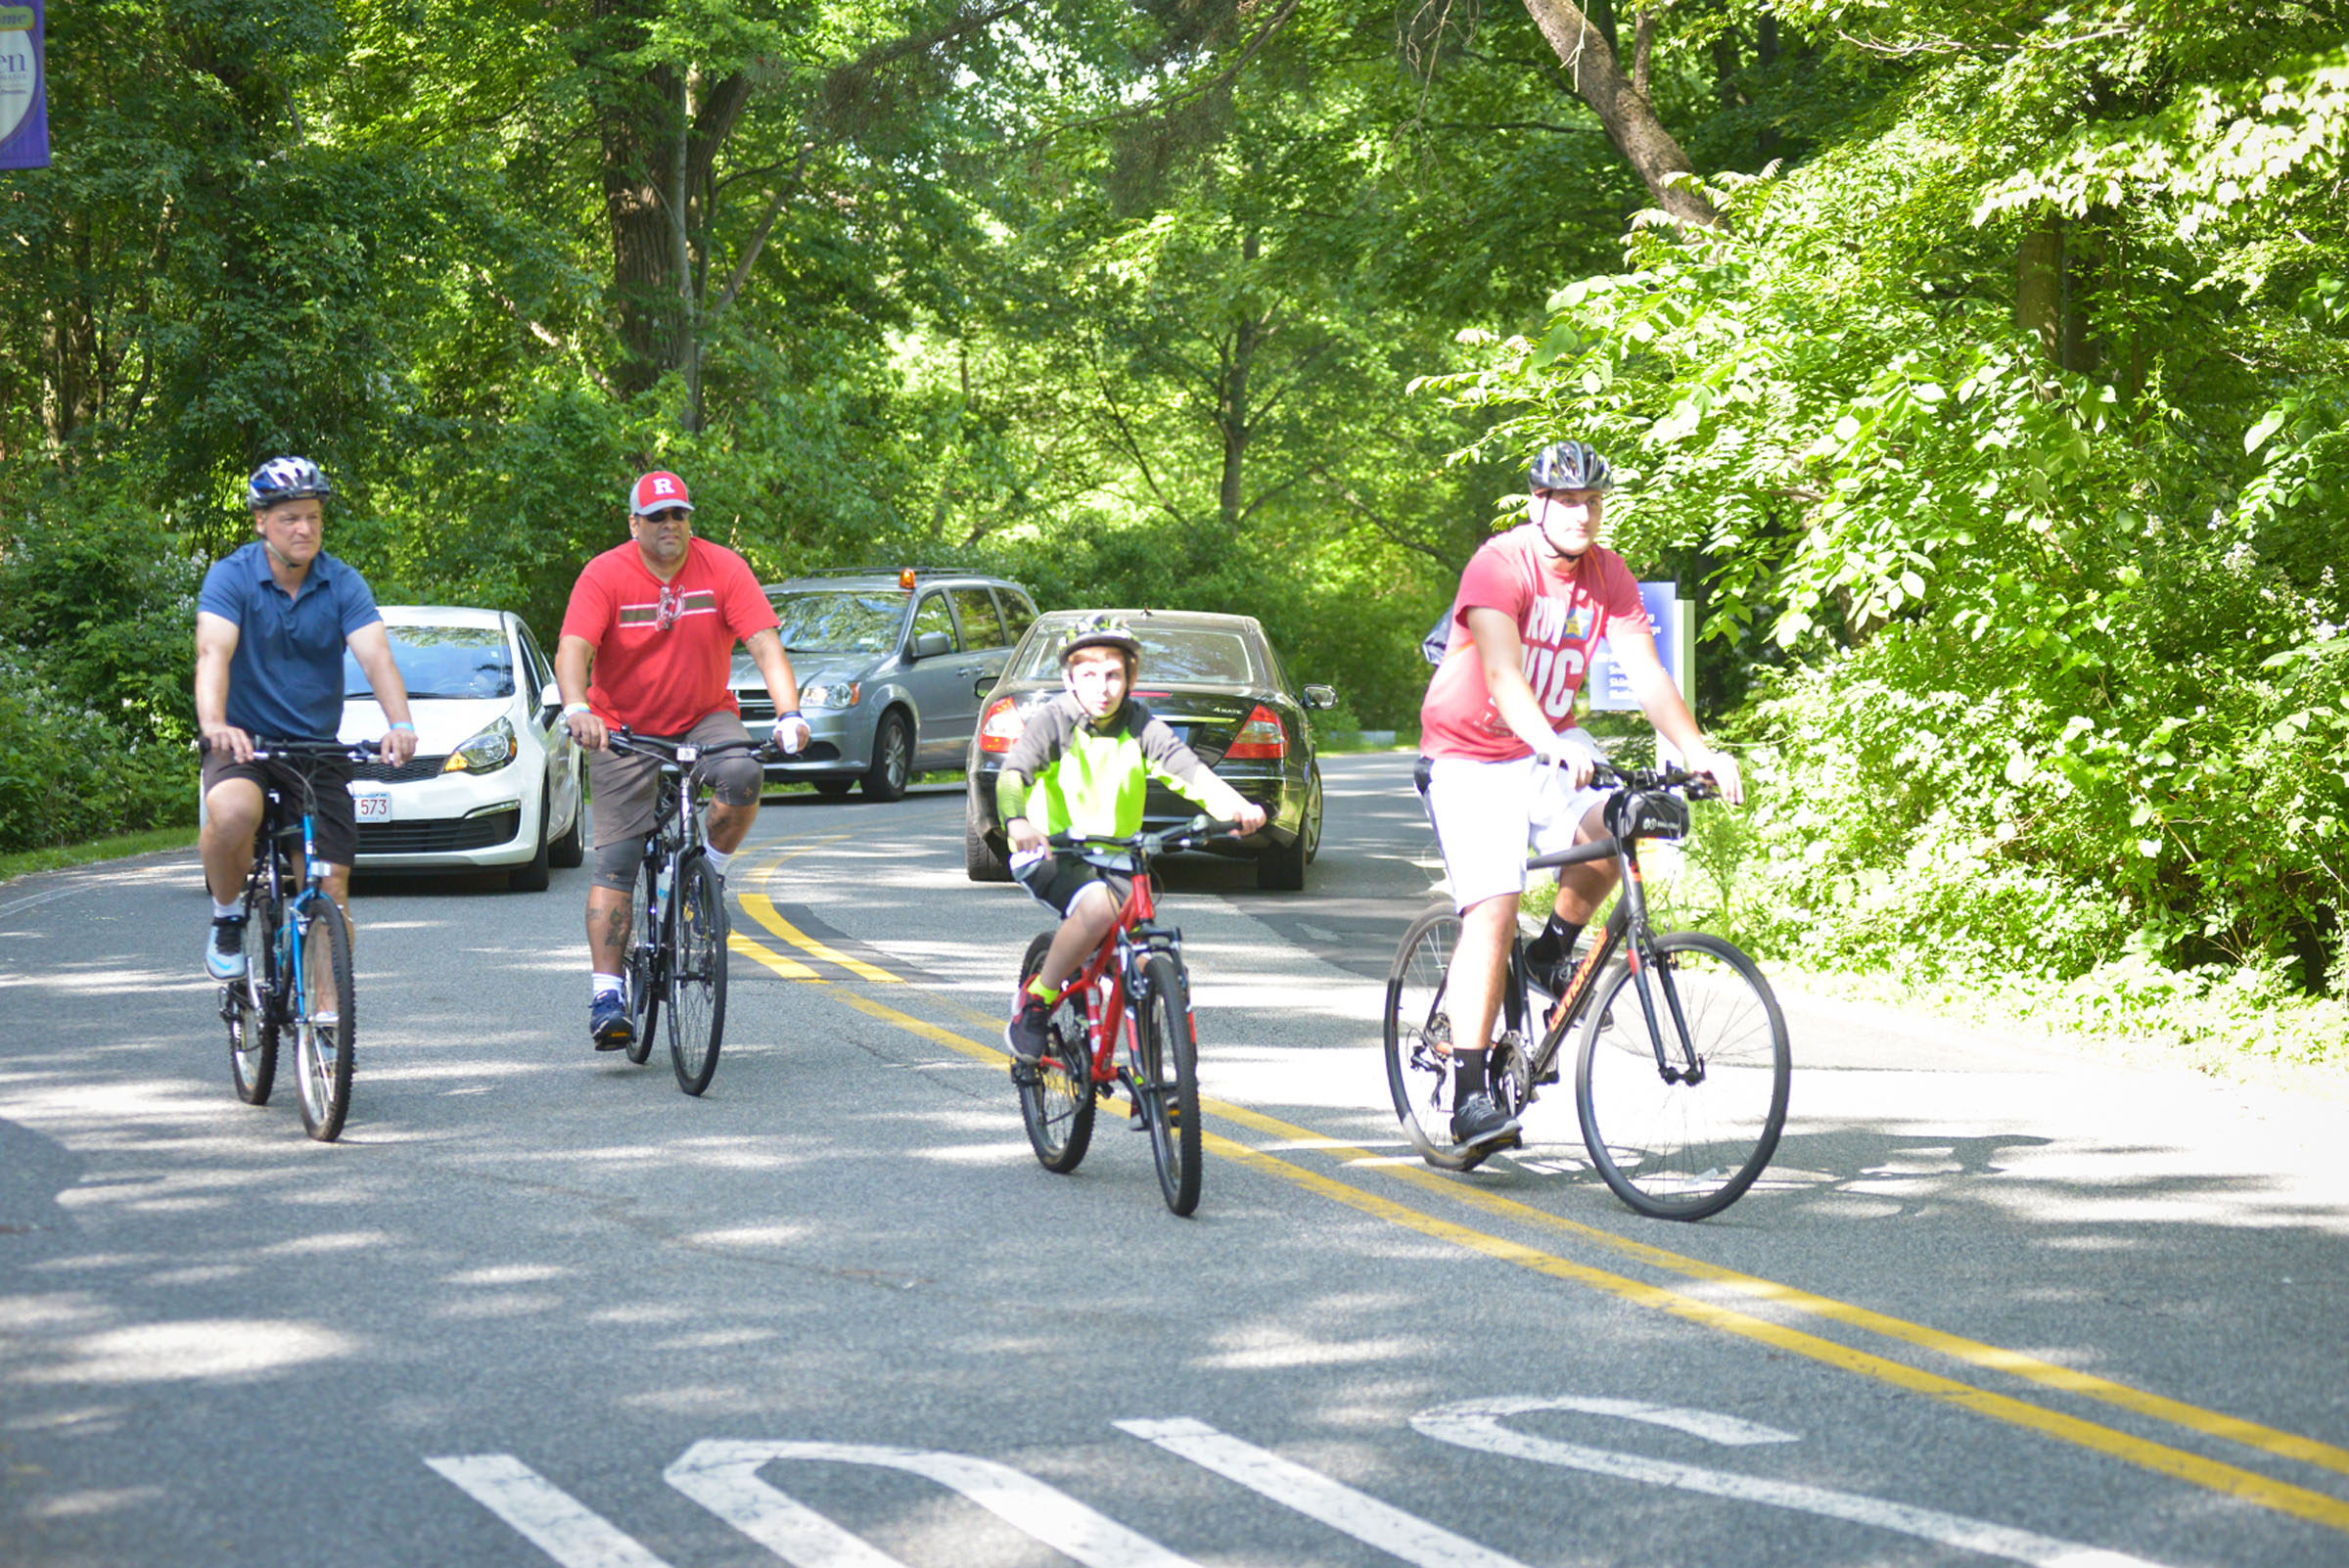 2017-06-04 GTD4A Charity Bike Ride - BCC - Paramus NJ-2013.jpg